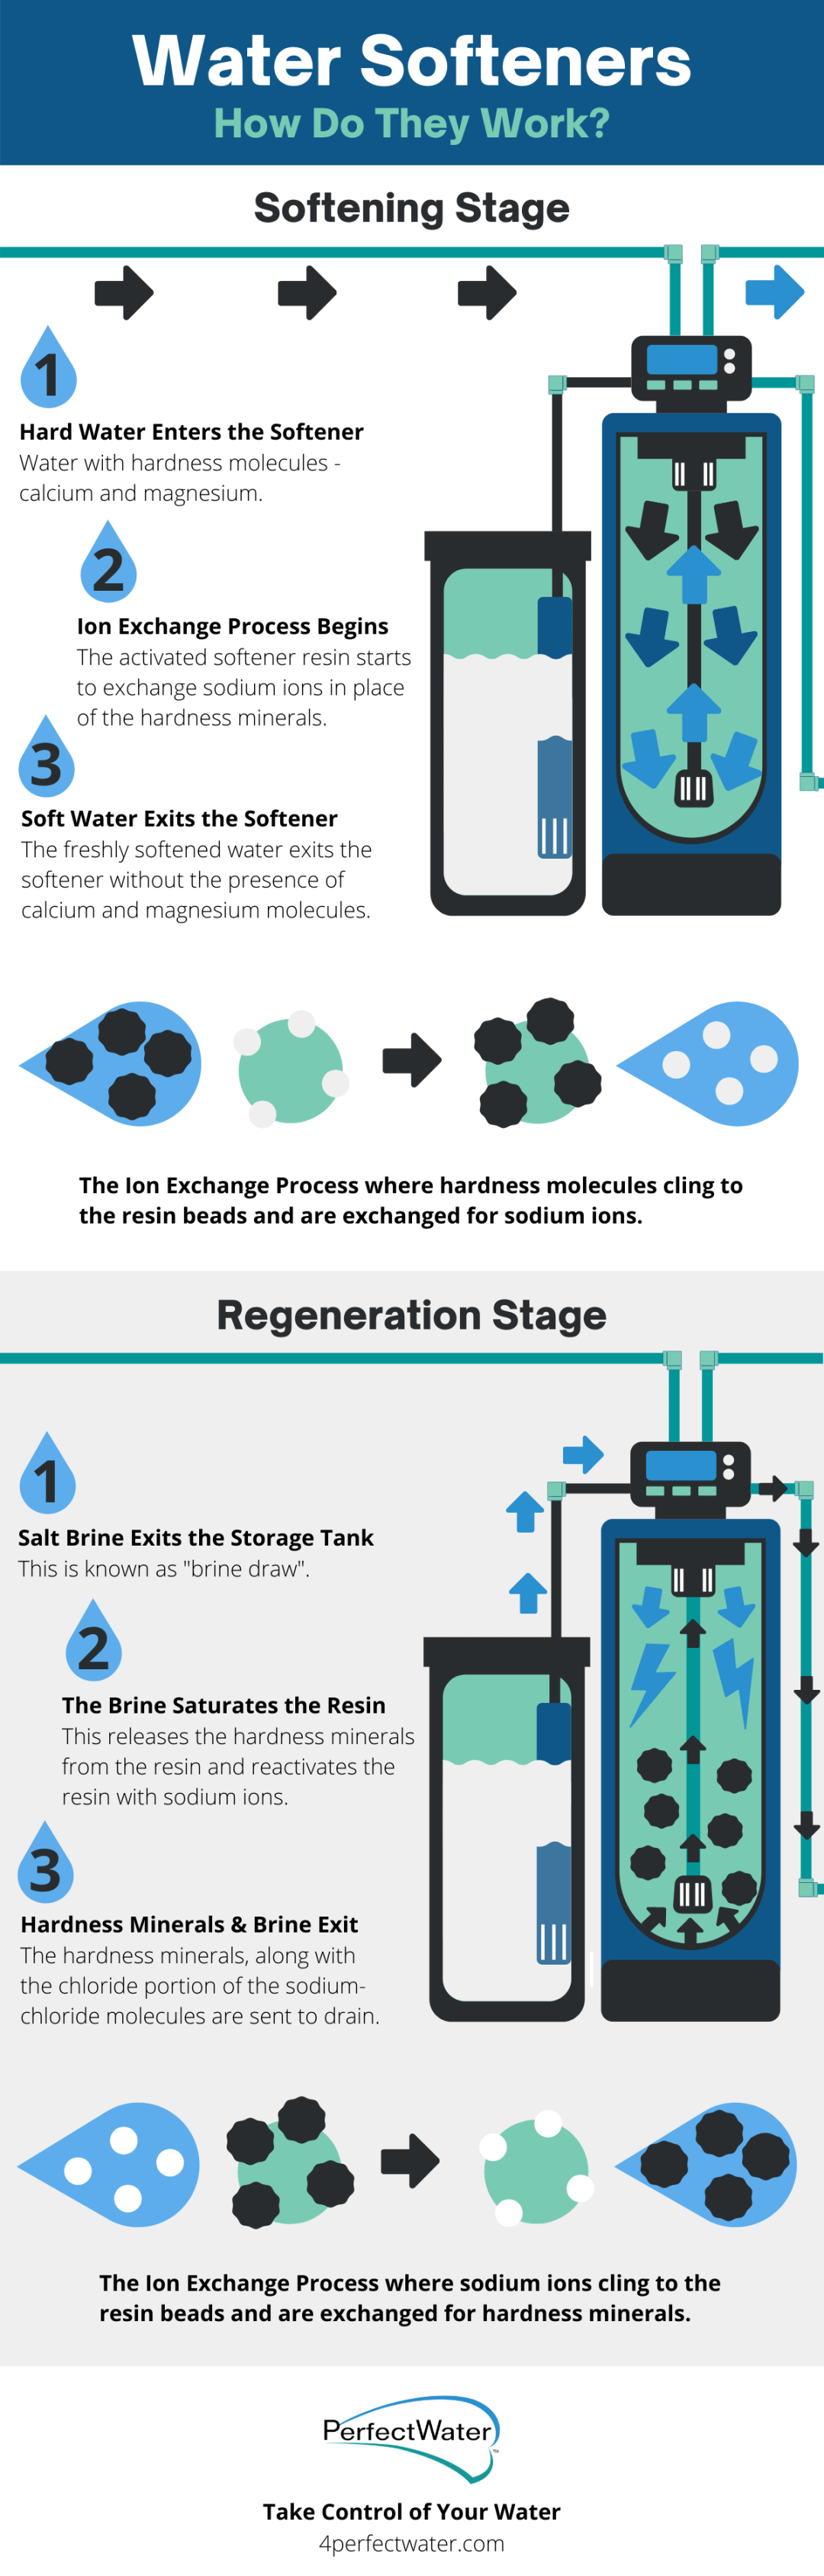 How Do Water Softeners Work